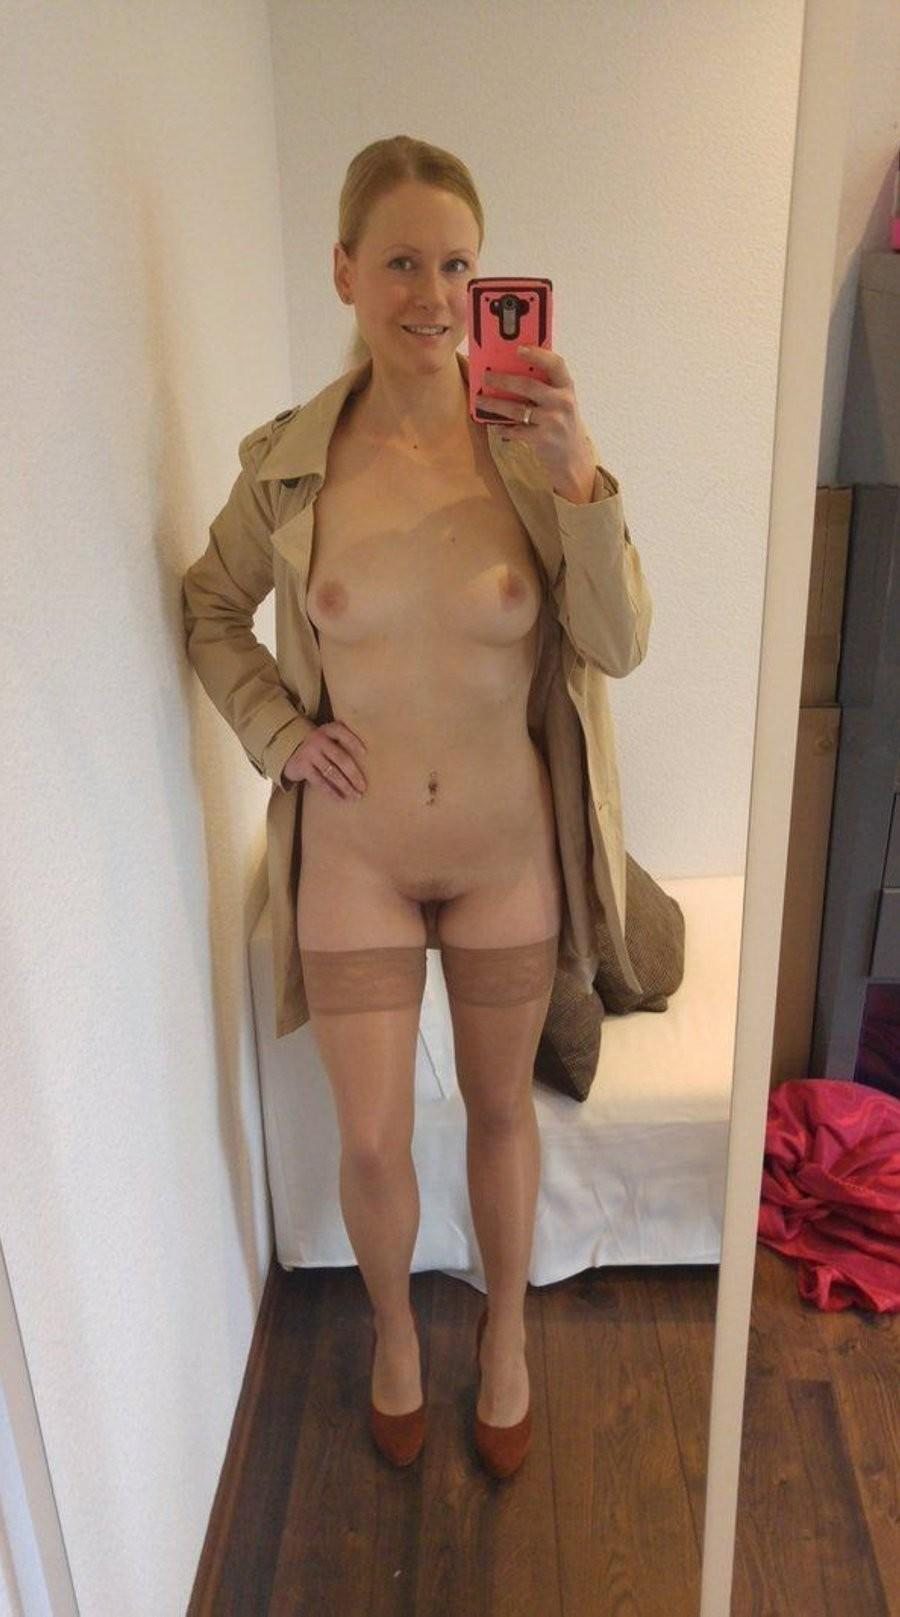 Sexy Nude MILF showing off tits and pussy. Blonde amateur wife takes a self shot in coat & stockings